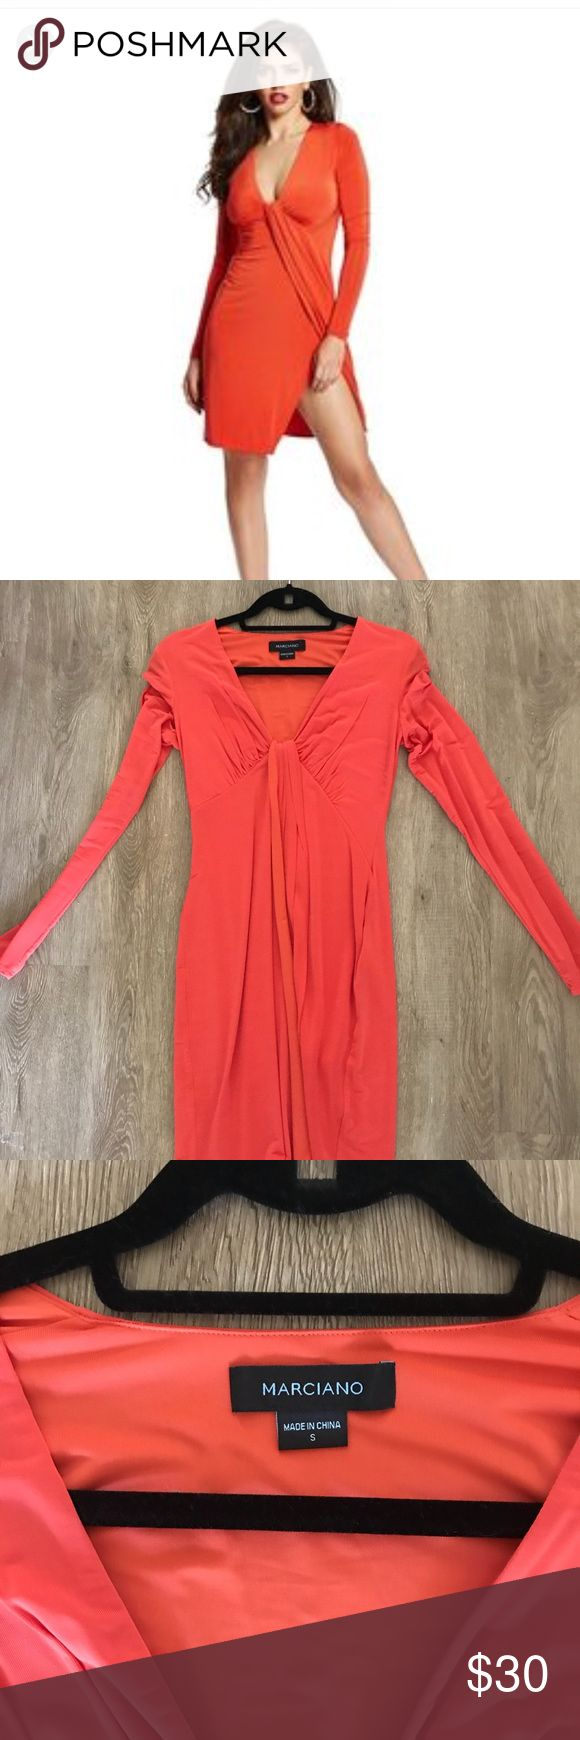 Marciano Orange Long Sleeve Dress Size Small Worn once! In great condition I recently had a baby and I don't see myself wearing this again please make an offer if you're interested!!! Marciano Dresses Mini